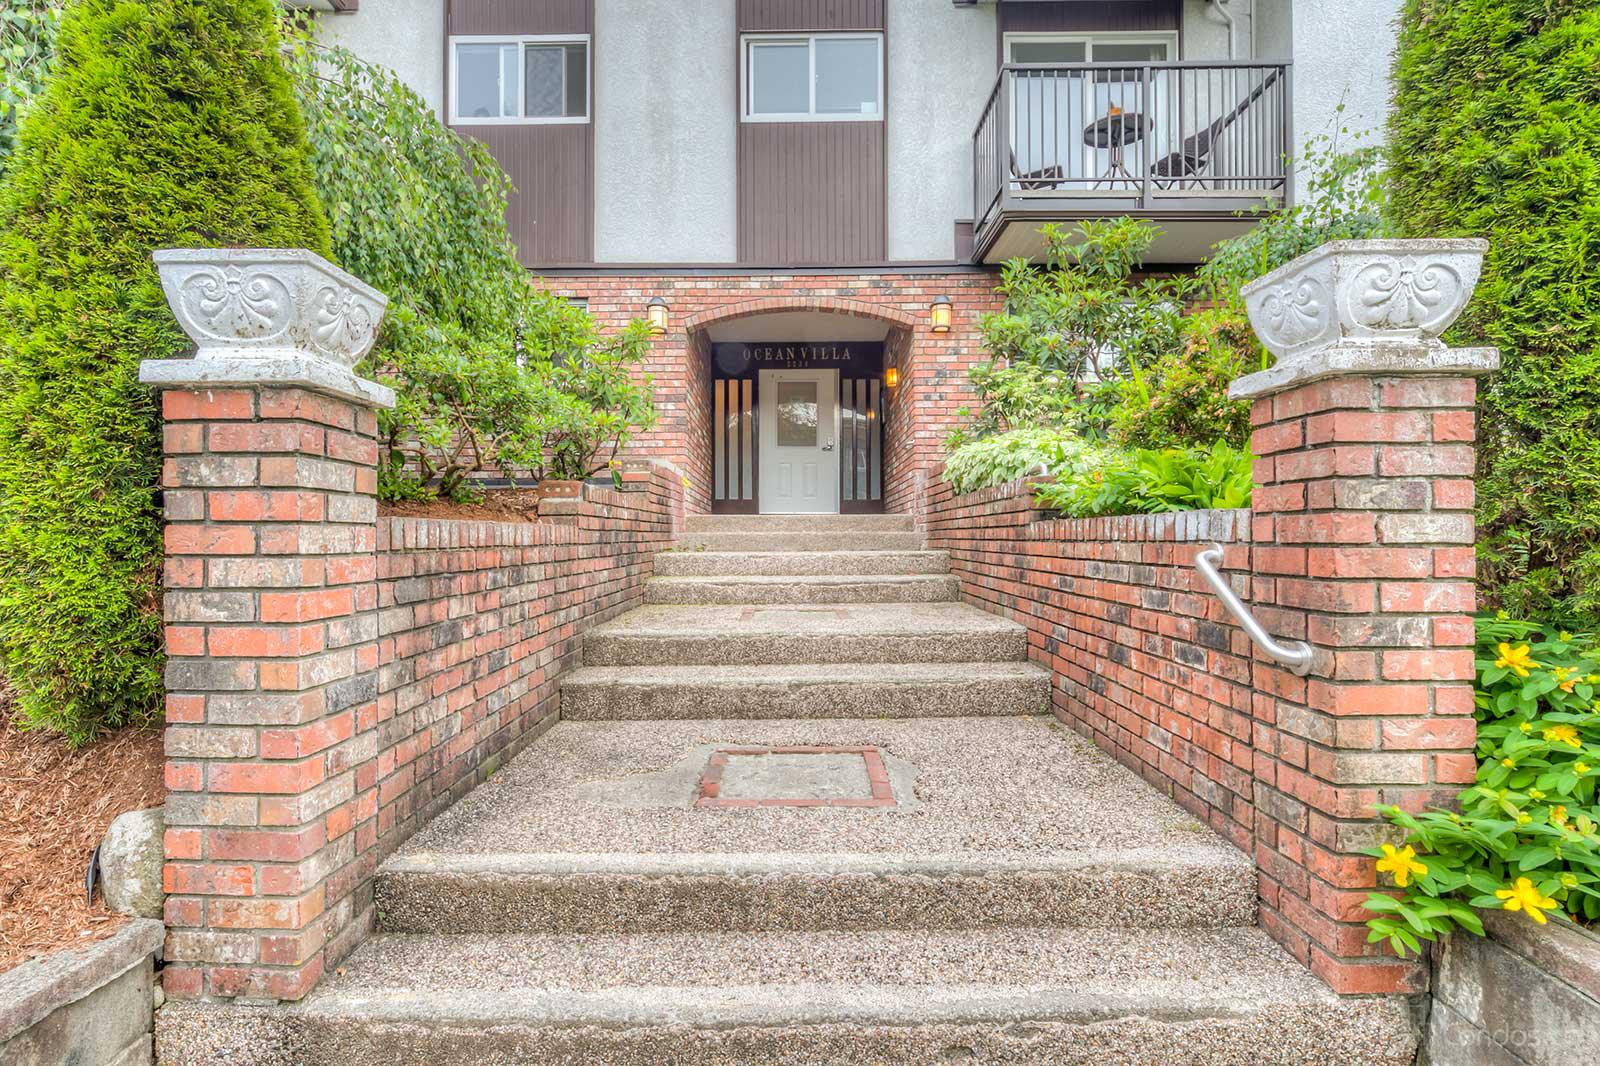 Ocean Villa at 2234 W 1st Ave, Vancouver 0